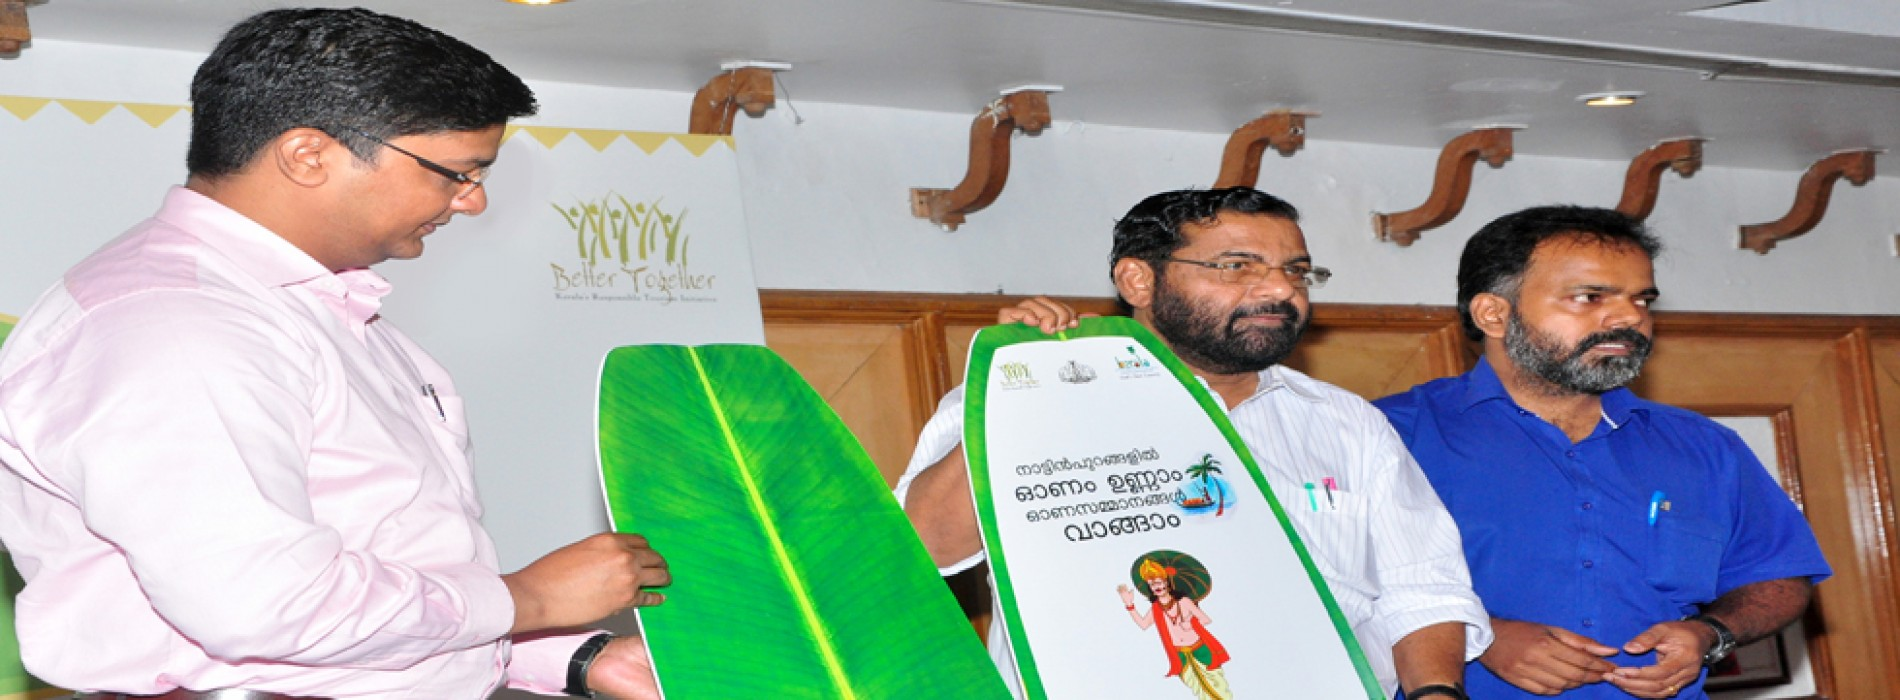 Tourism Minister of Kerala inaugurates Responsible Tourism Mission and special Onam holiday packages